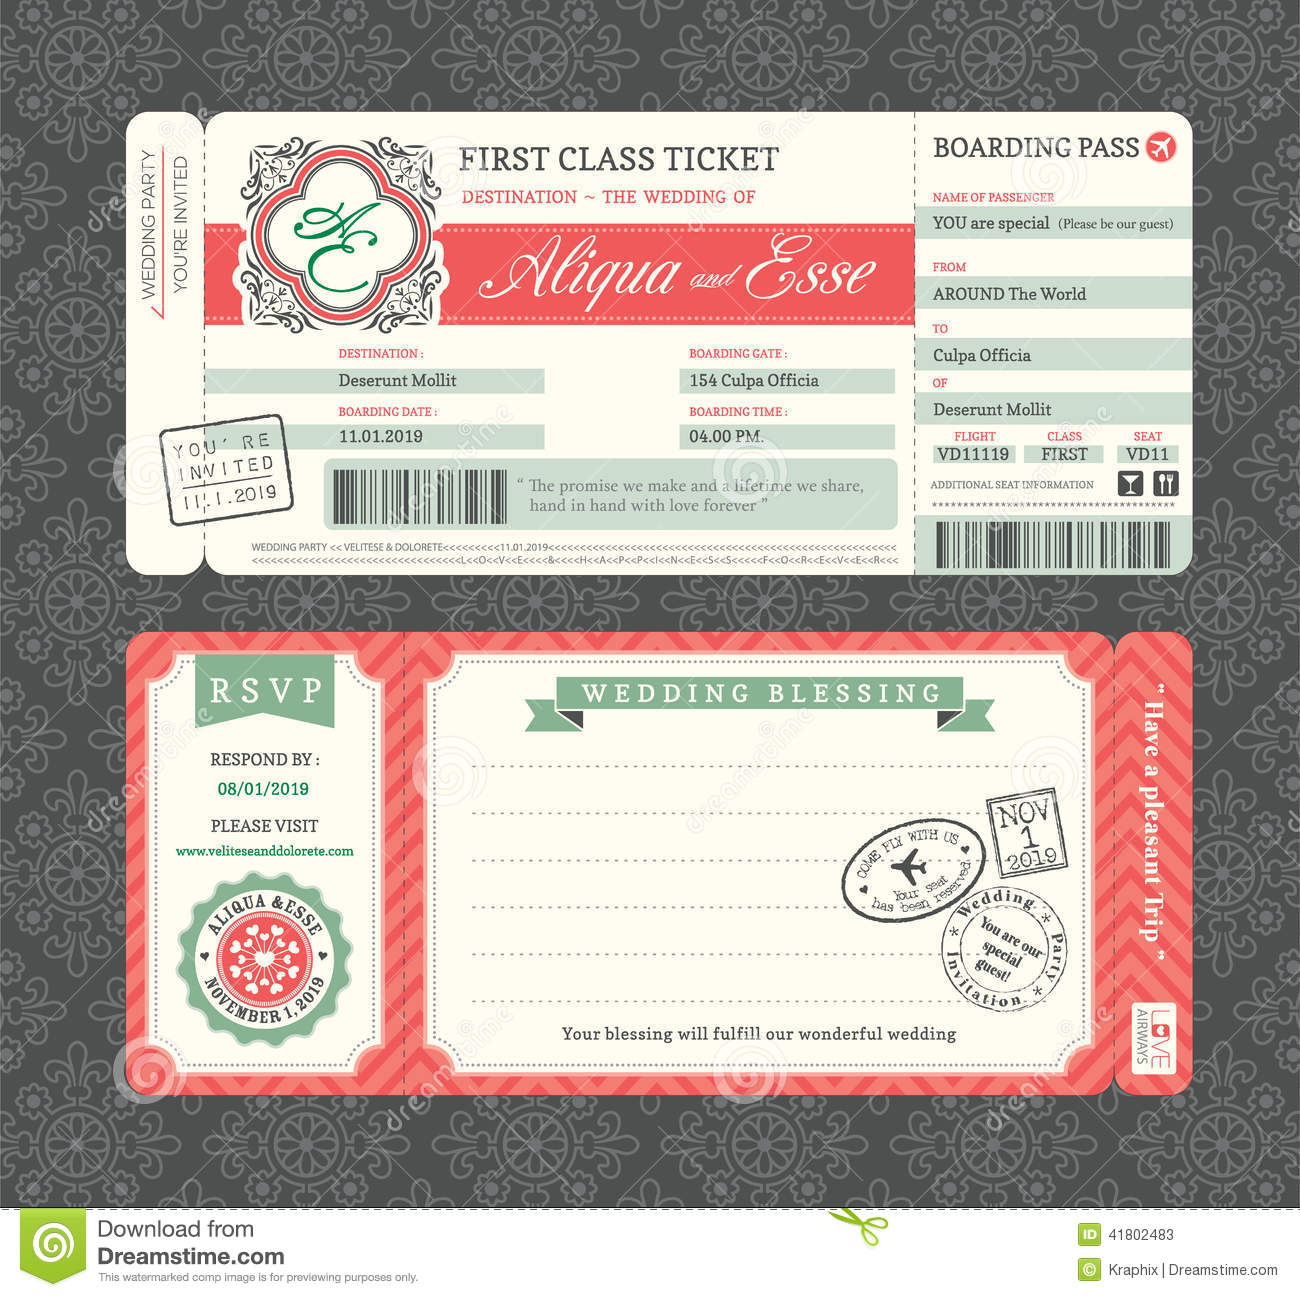 Vintage Boarding Pass Wedding Invitation Template Illustration 41802483    Megapixl  Plane Ticket Invitation Template